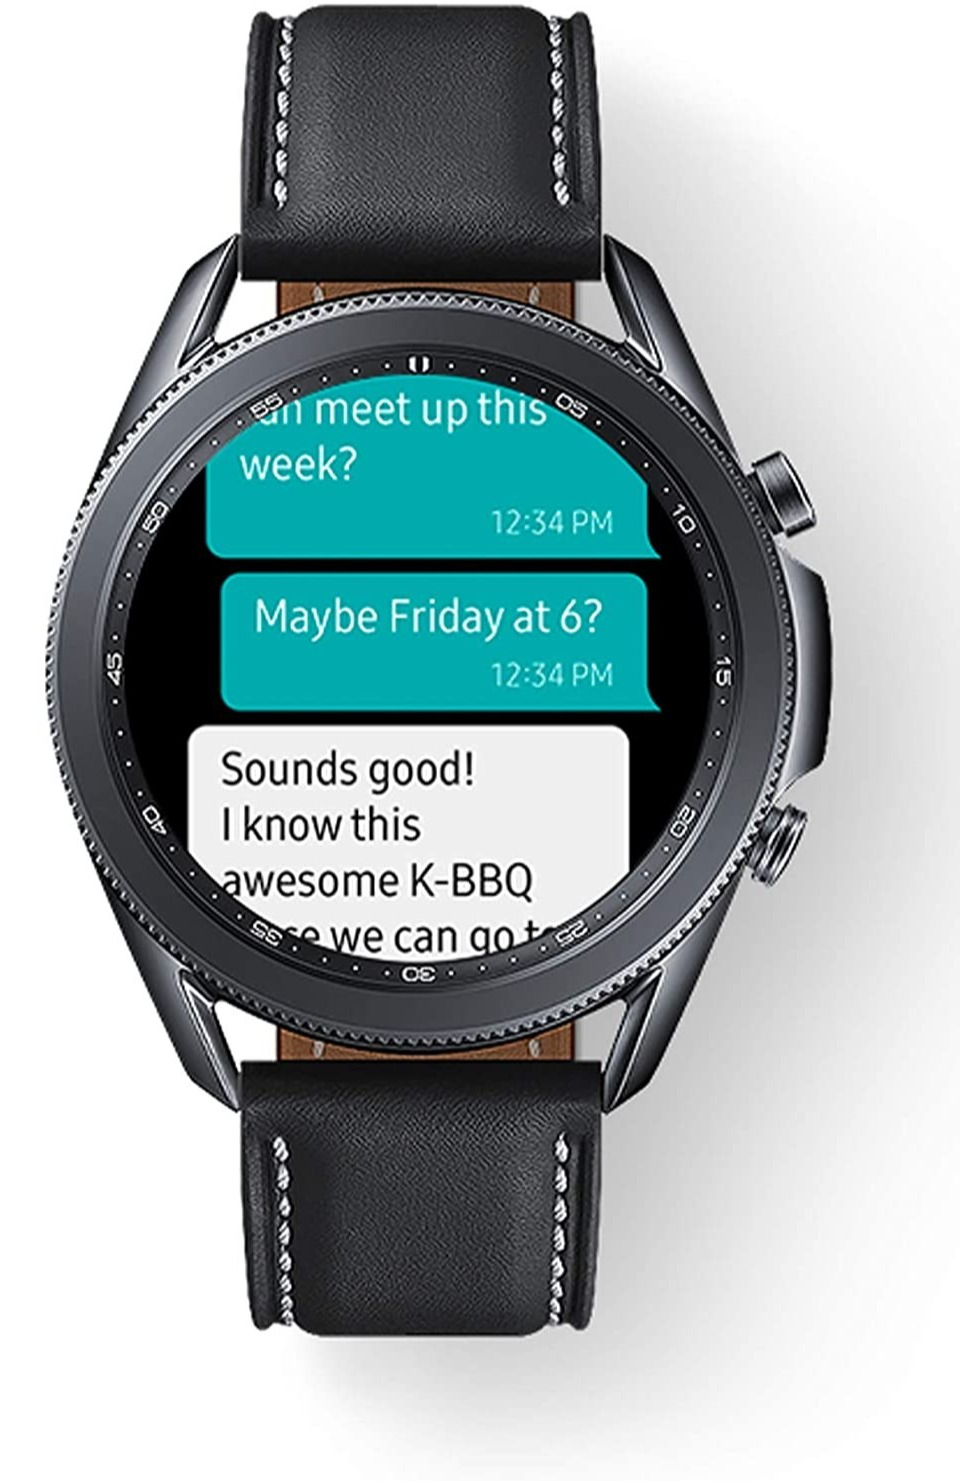 The watch allows you to answer messages from your wrist